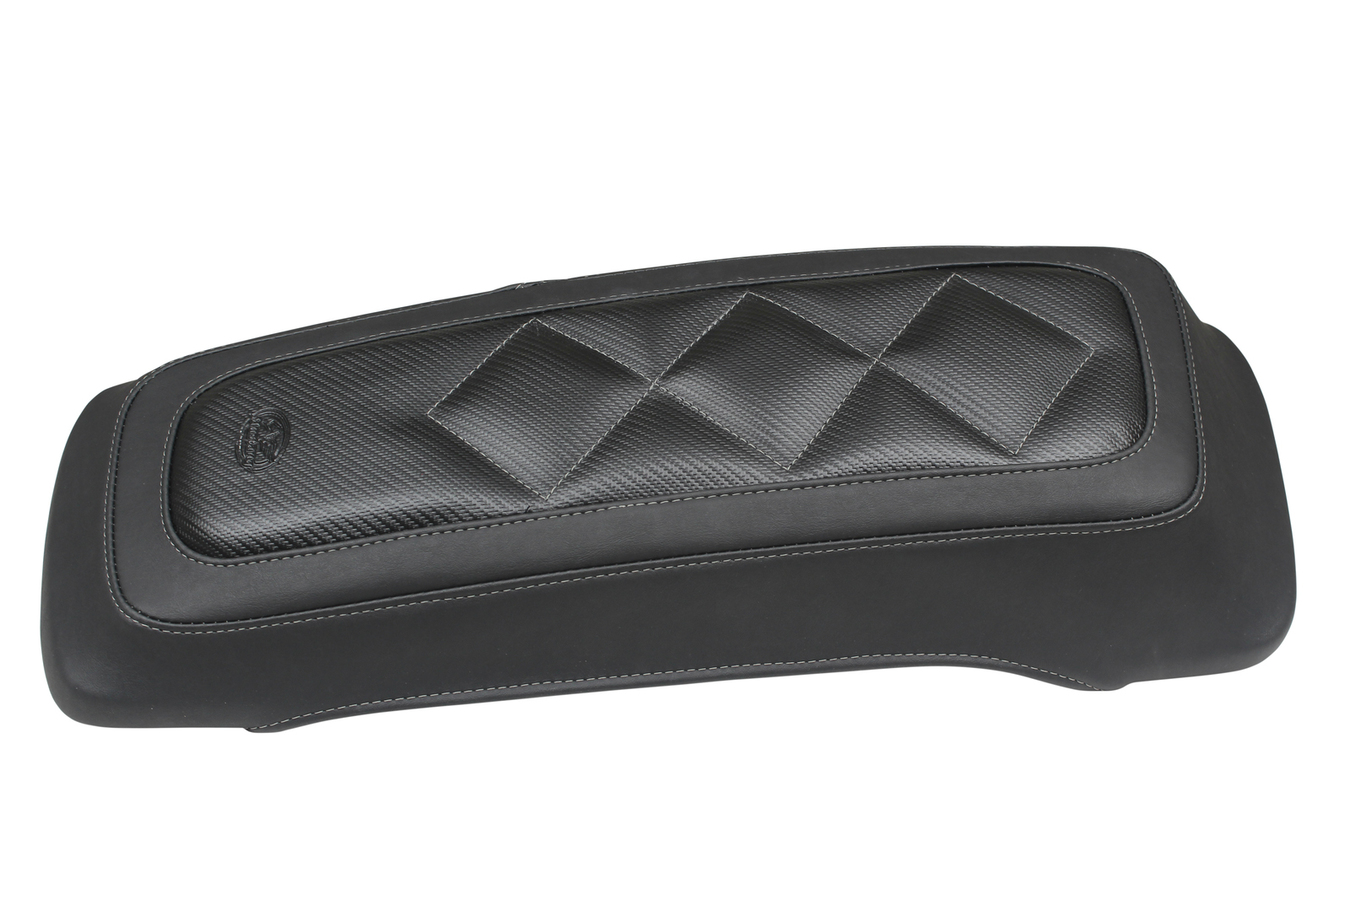 Saddlebag Lid Covers for Harley-Davidson FL Touring